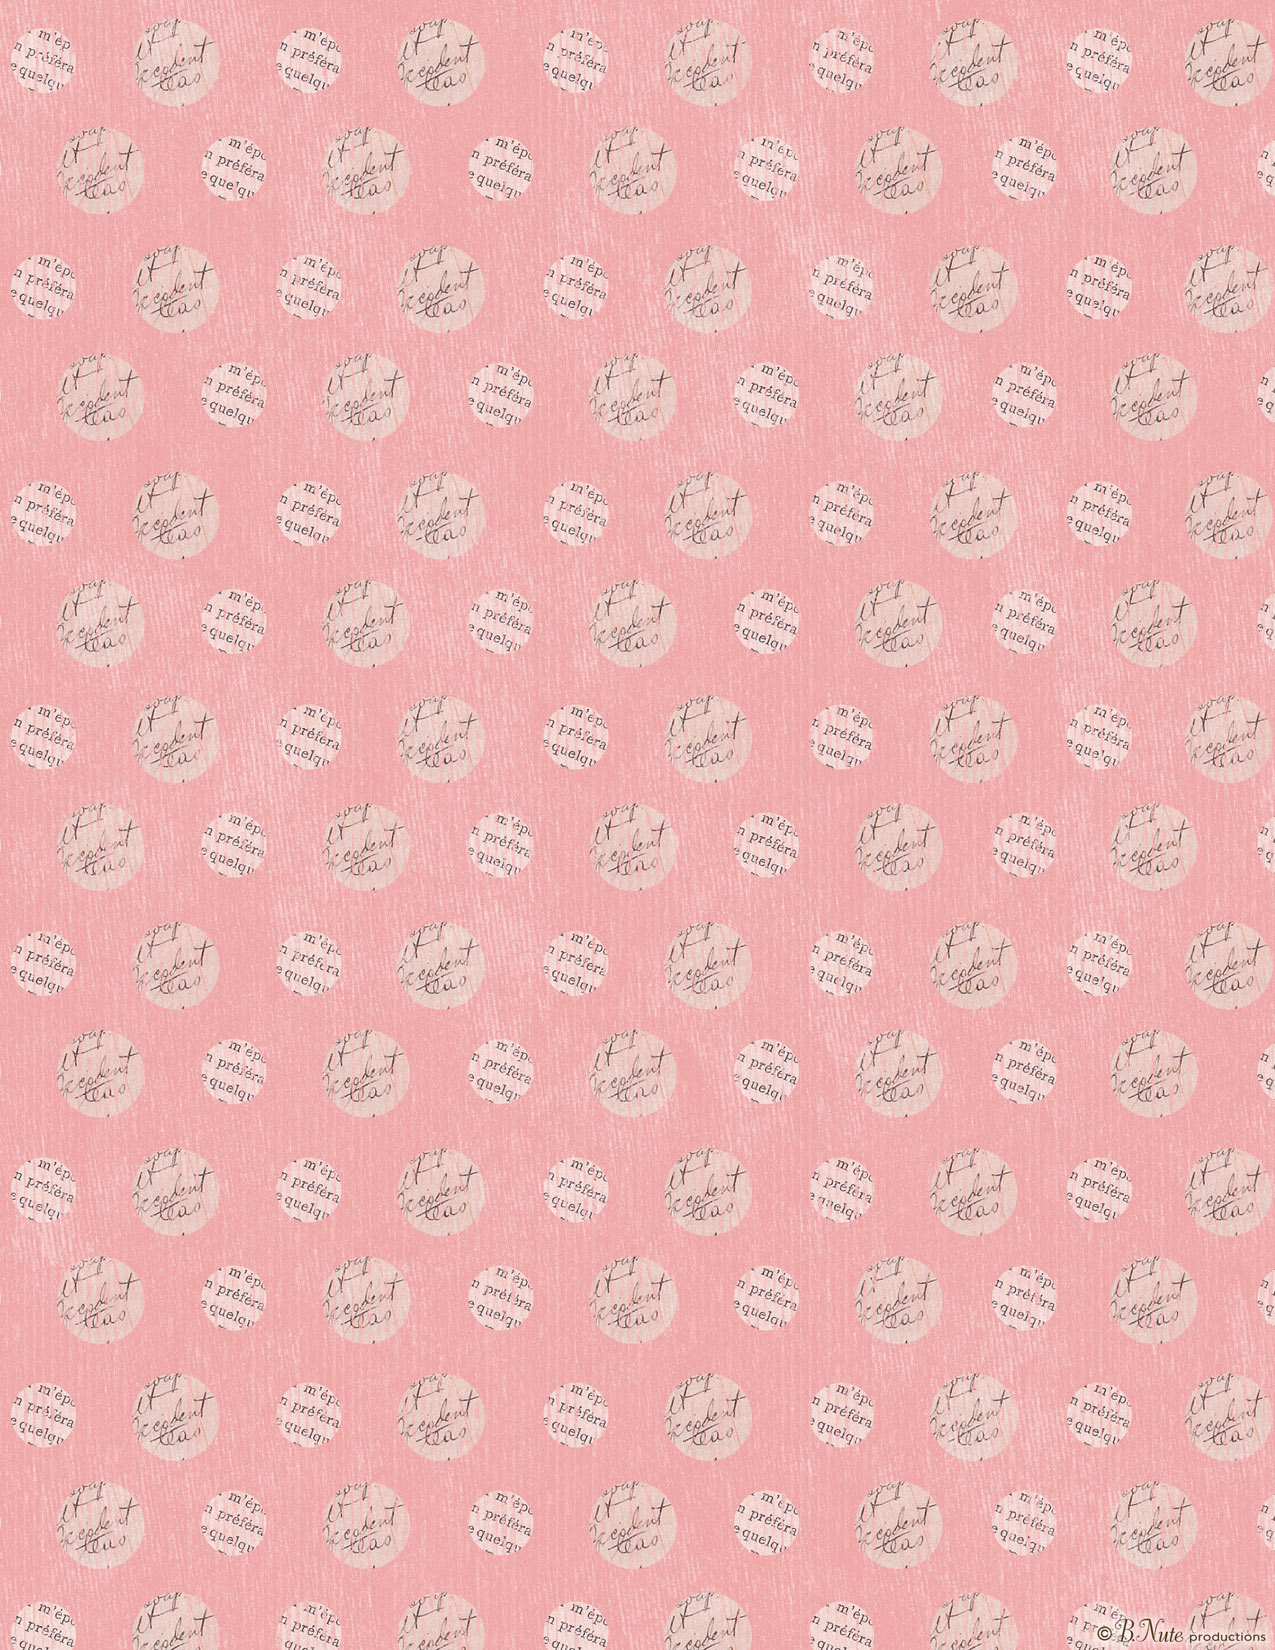 5 Images of Free Printable Scrapbook Paper